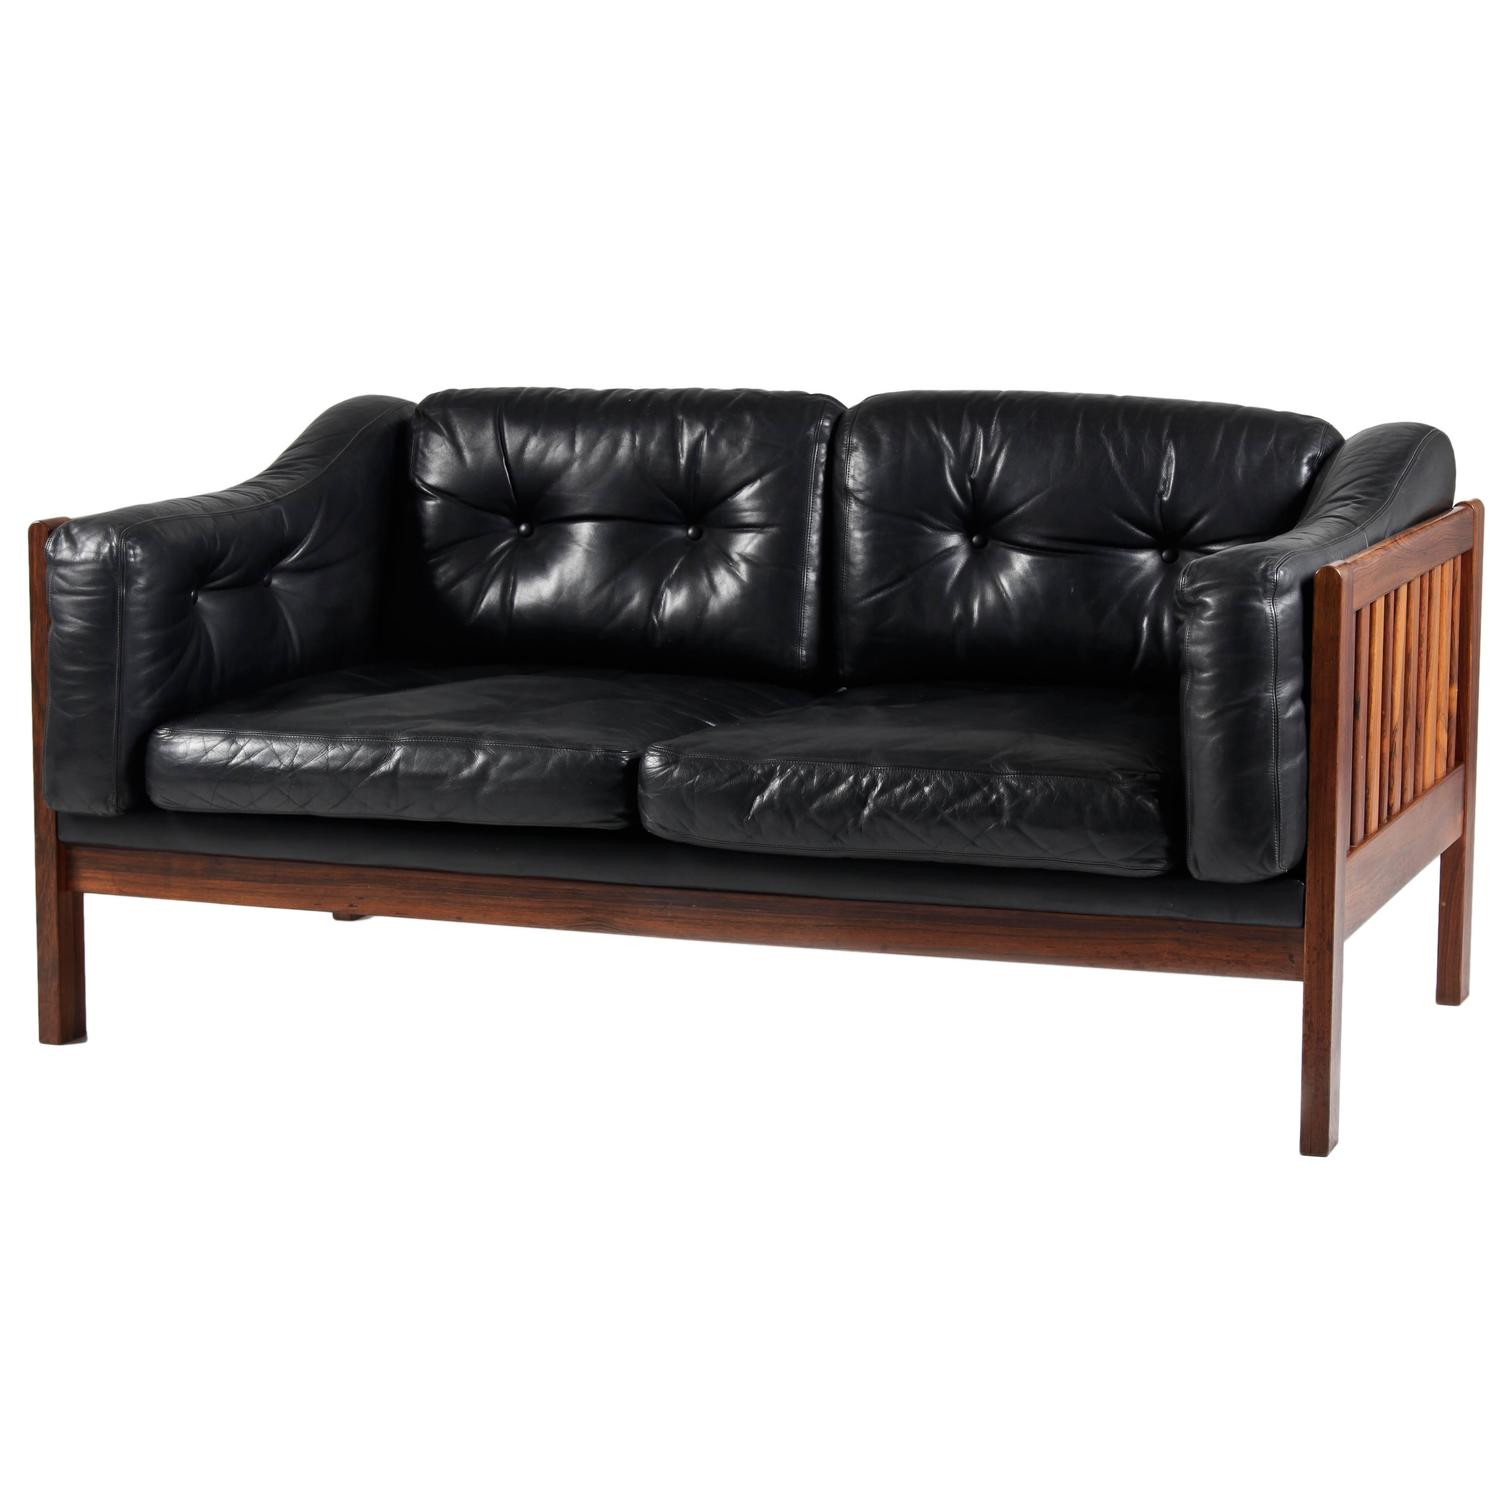 "Mahogany and Leather Sofa ""Monte Carlo"" 1965 at 1stdibs"